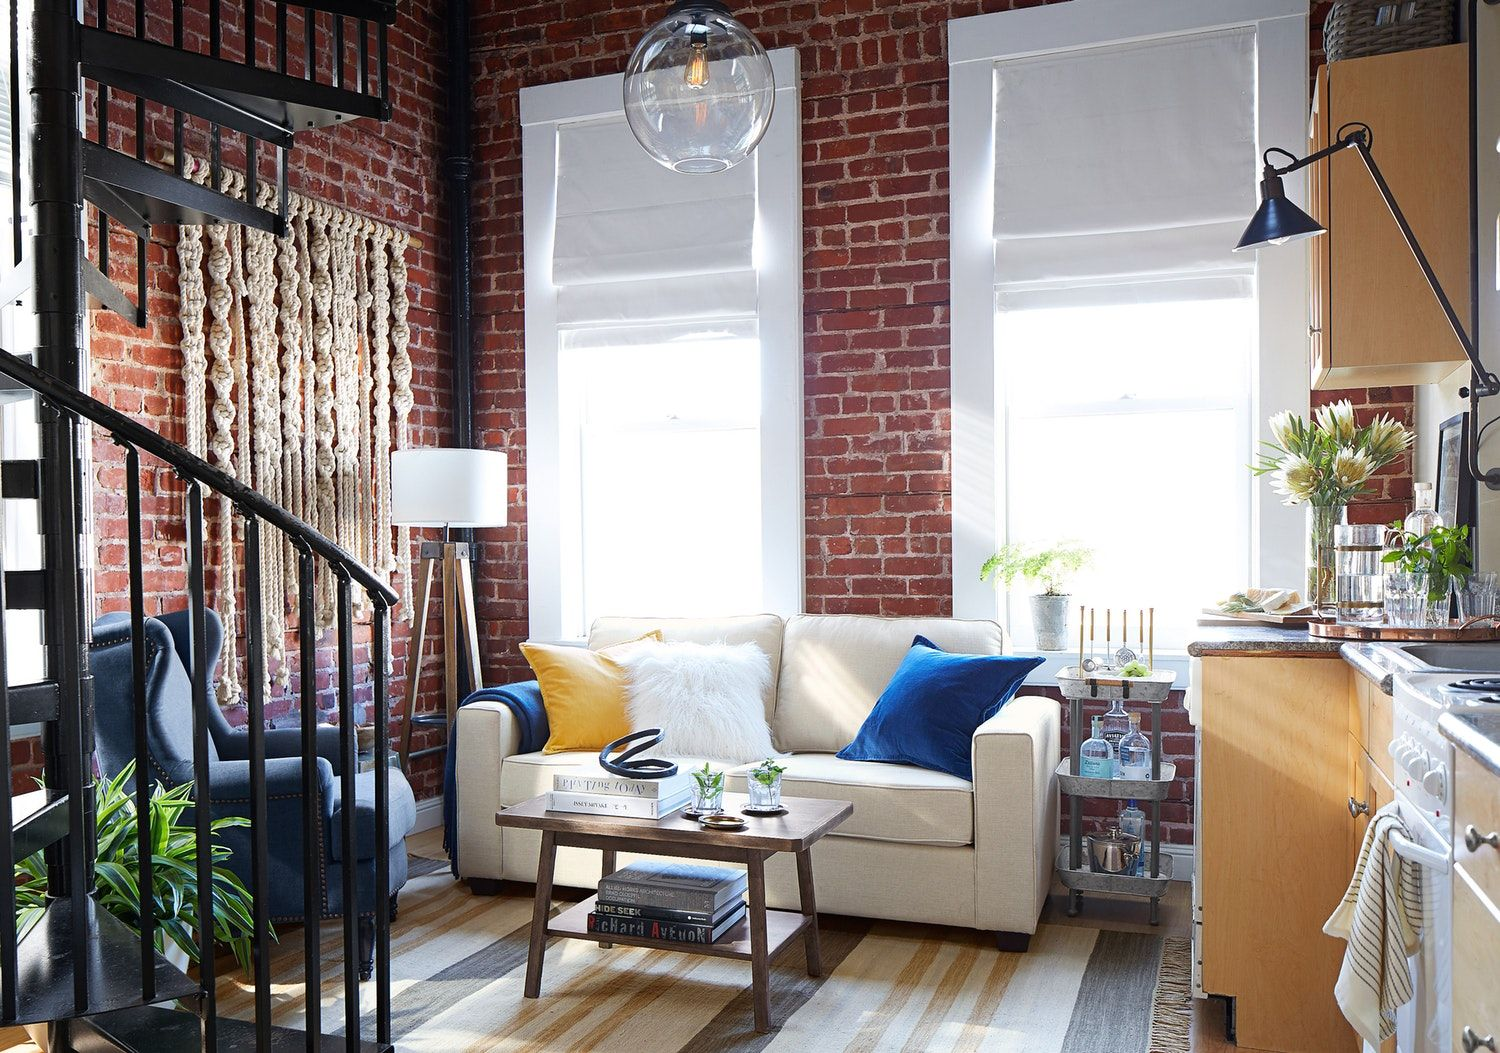 Pottery Barn Launches PB Apartment To Focus on Small